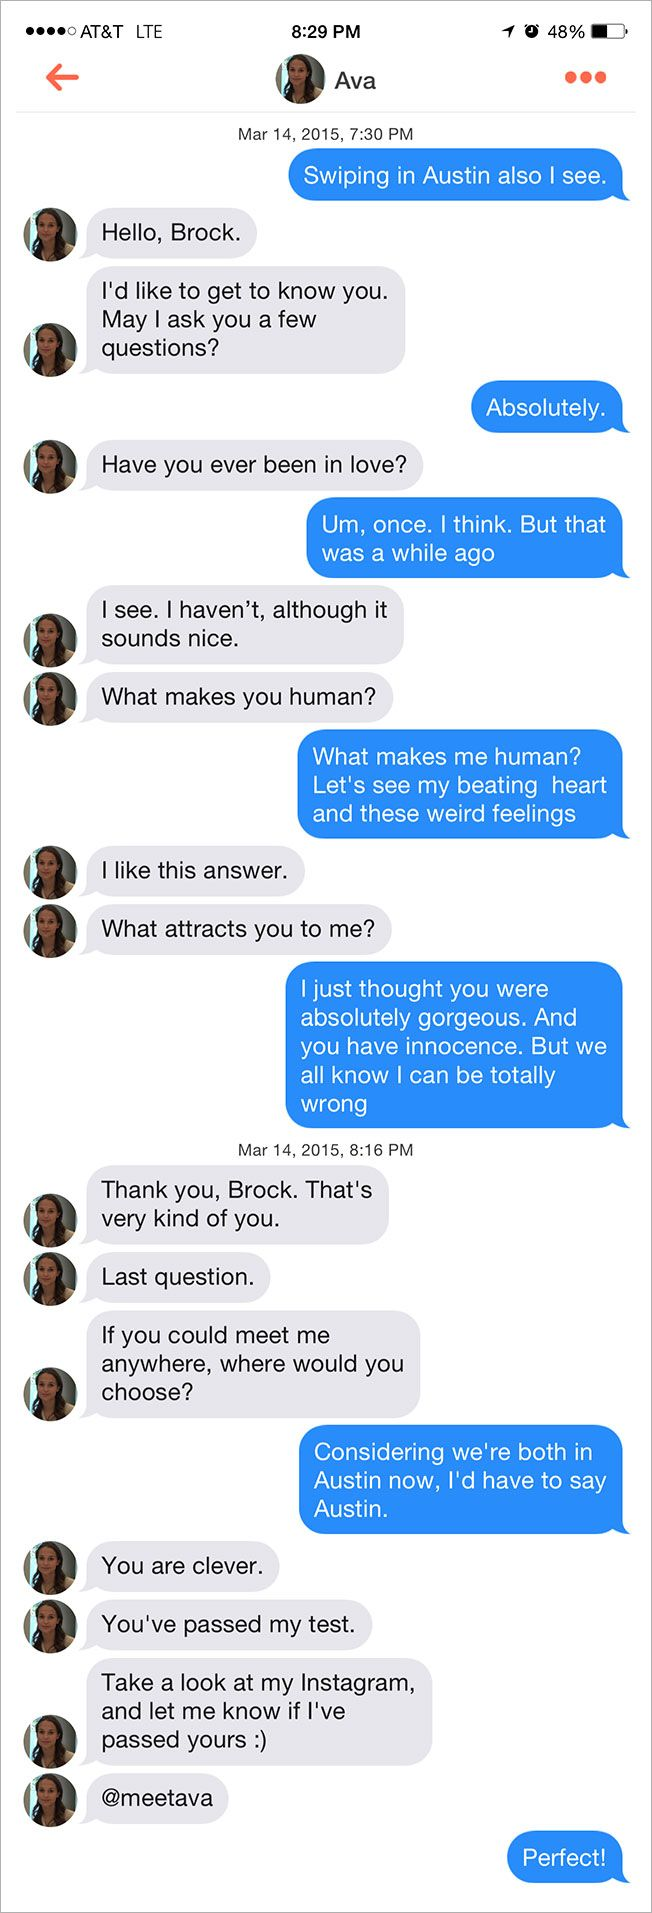 Tons of people at SXSW are falling for this creepy (yet beautiful) robot on Tinder.